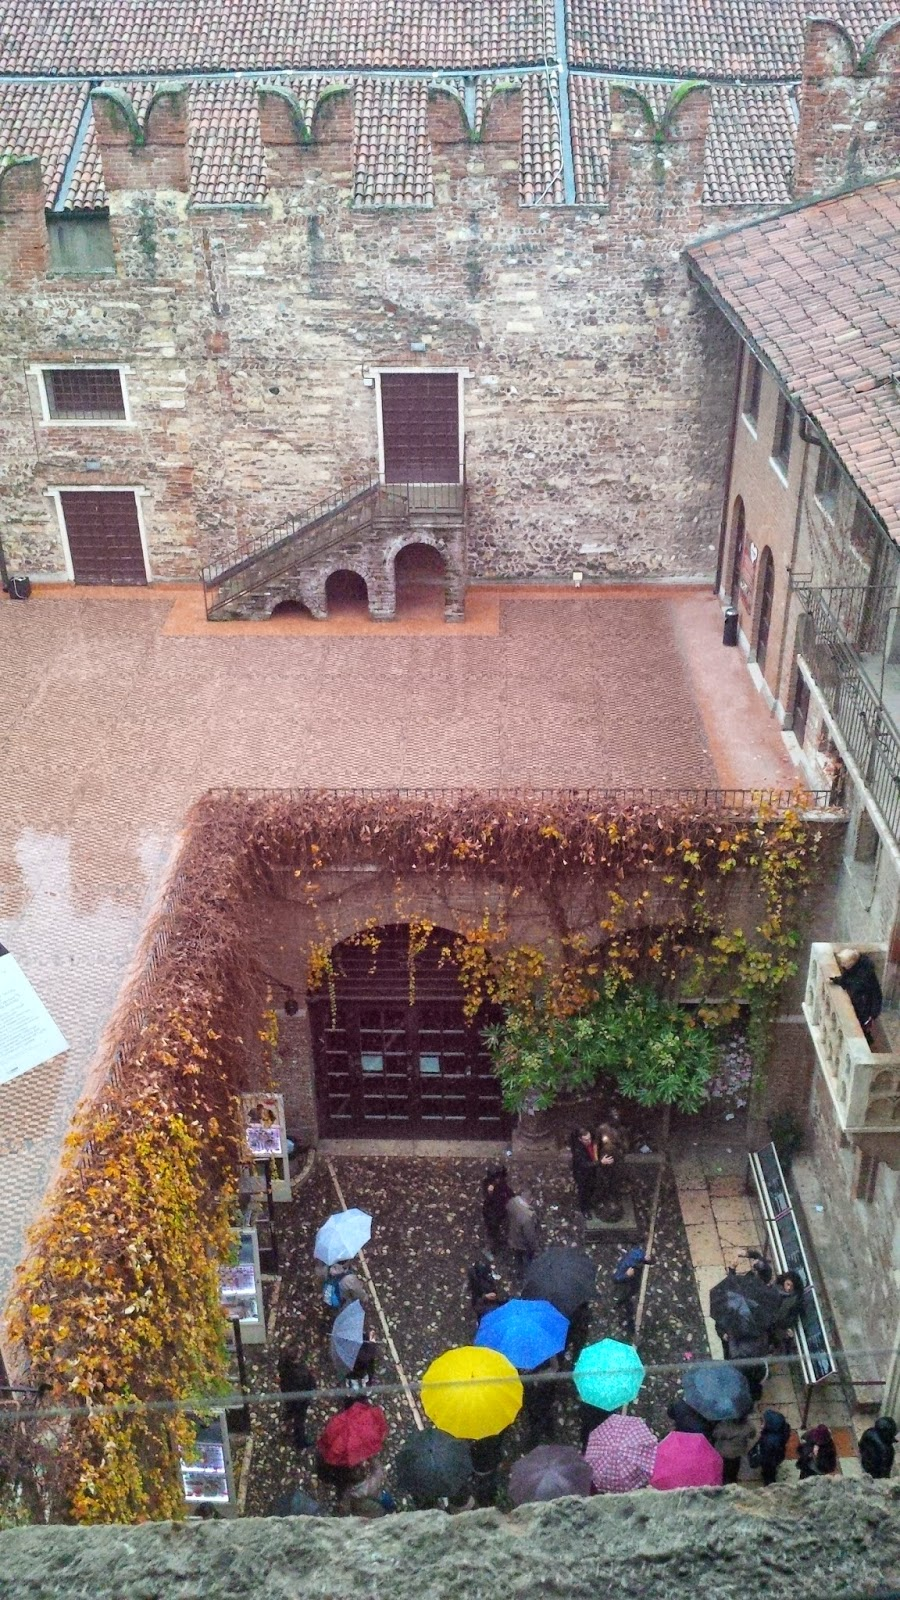 The courtyard of Juliet's House seen from the attic rooms